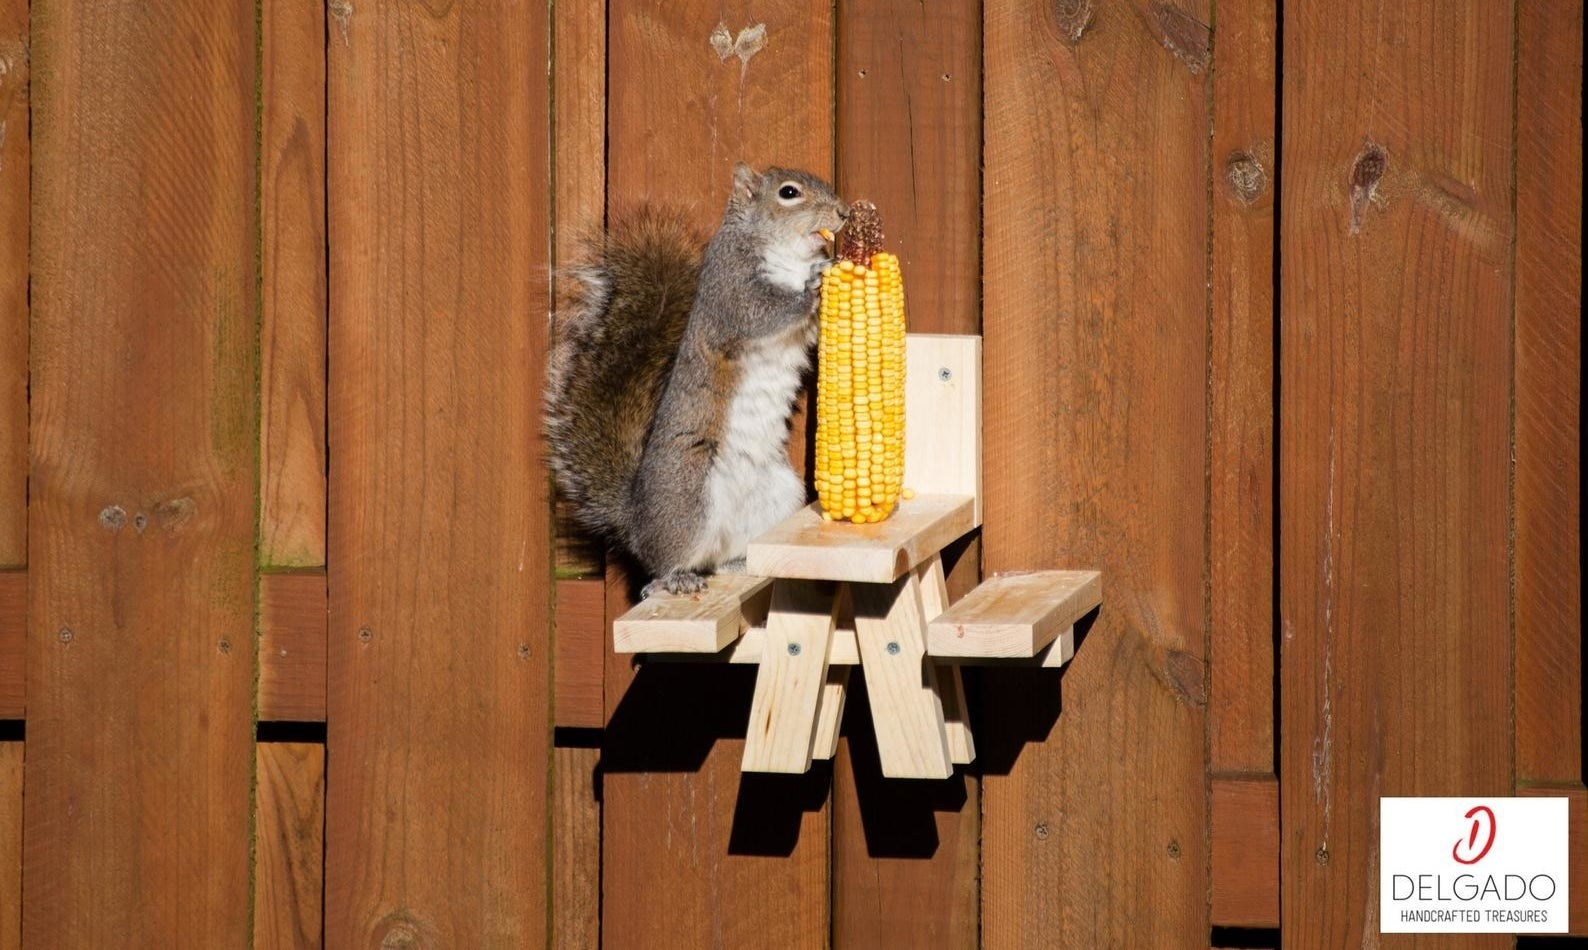 A squirrel sitting at the feeder table